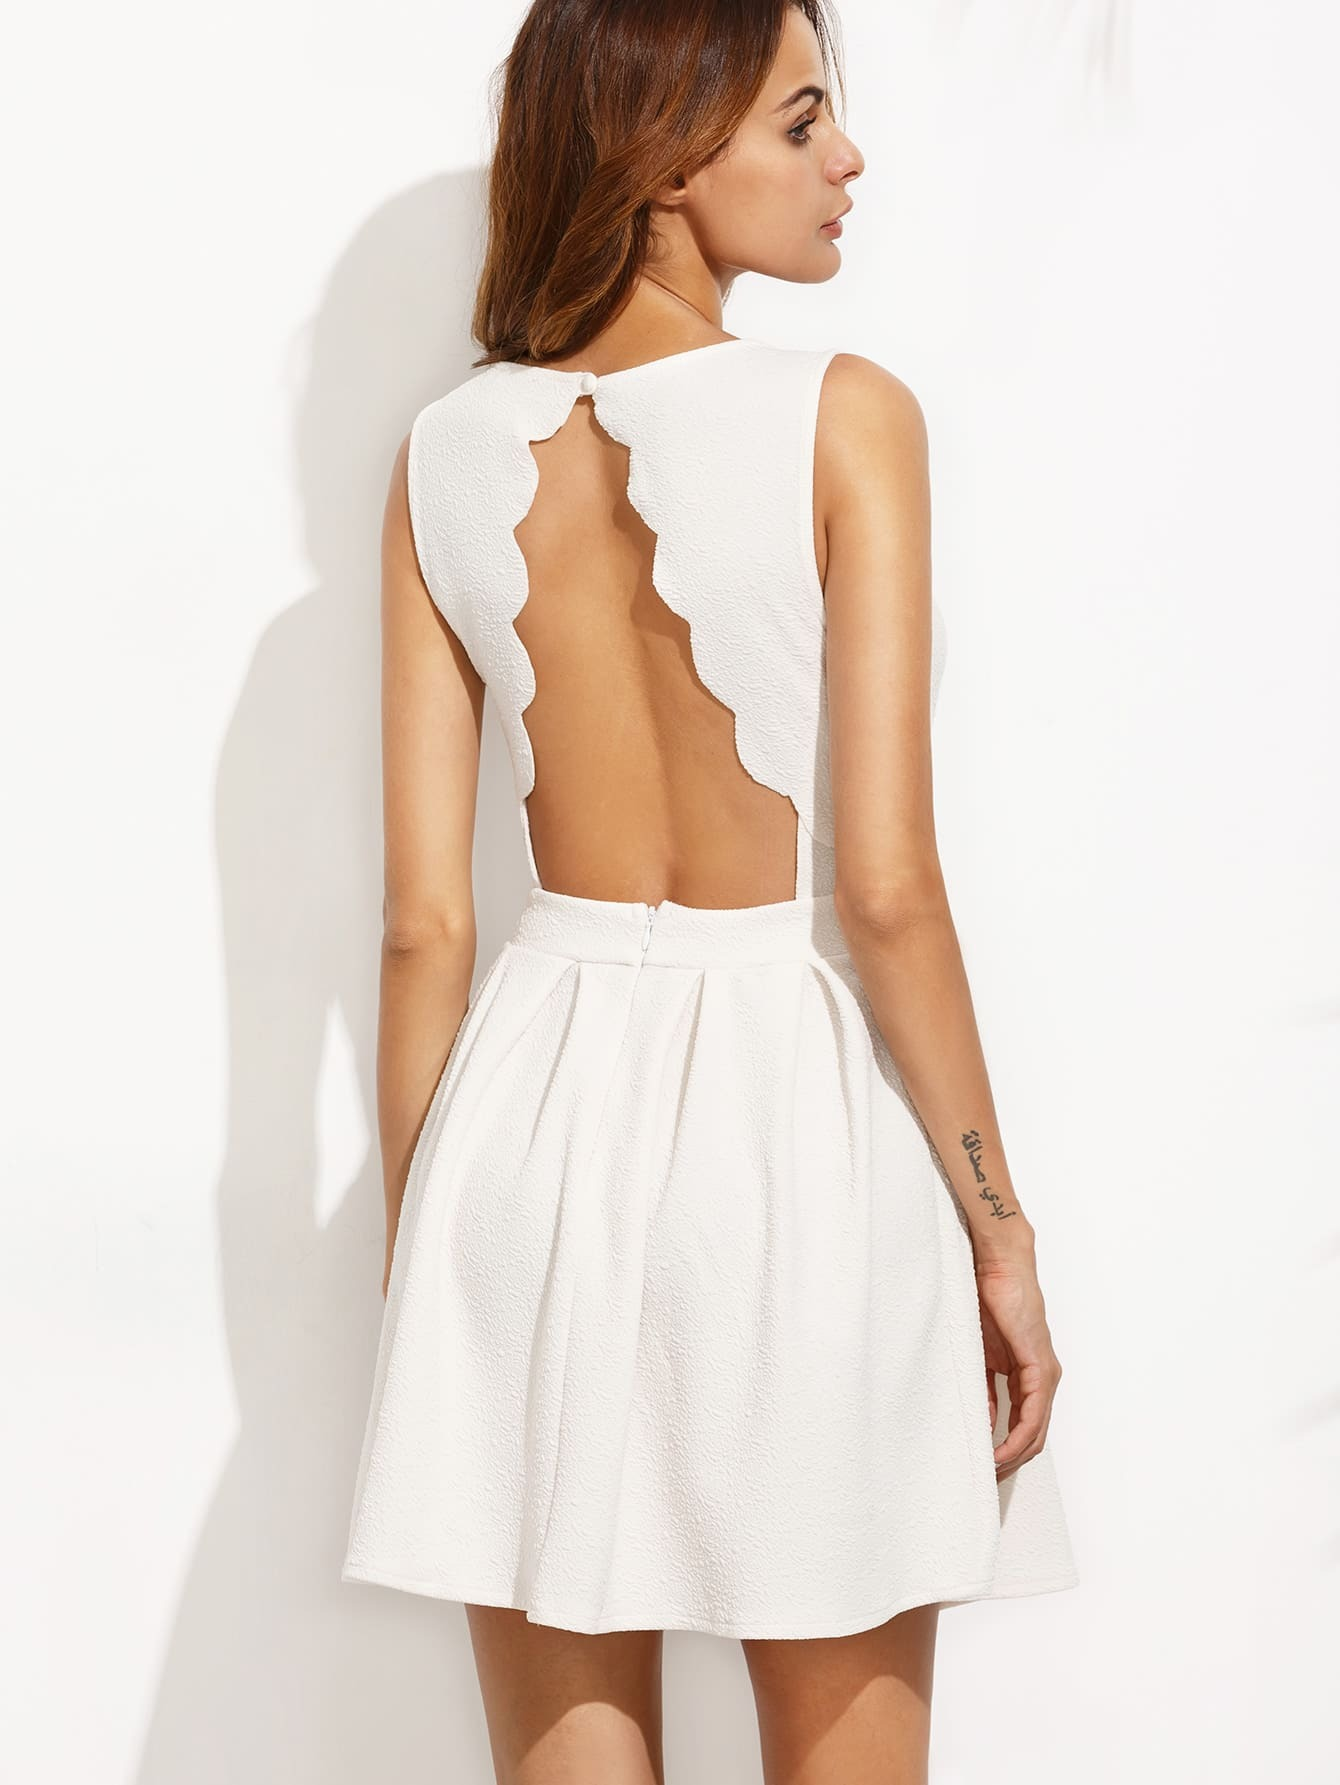 White Scalloped Cut Out A line DressWhite Scalloped Cut Out A line Dress<br><br>color: White<br>size: L,M,S